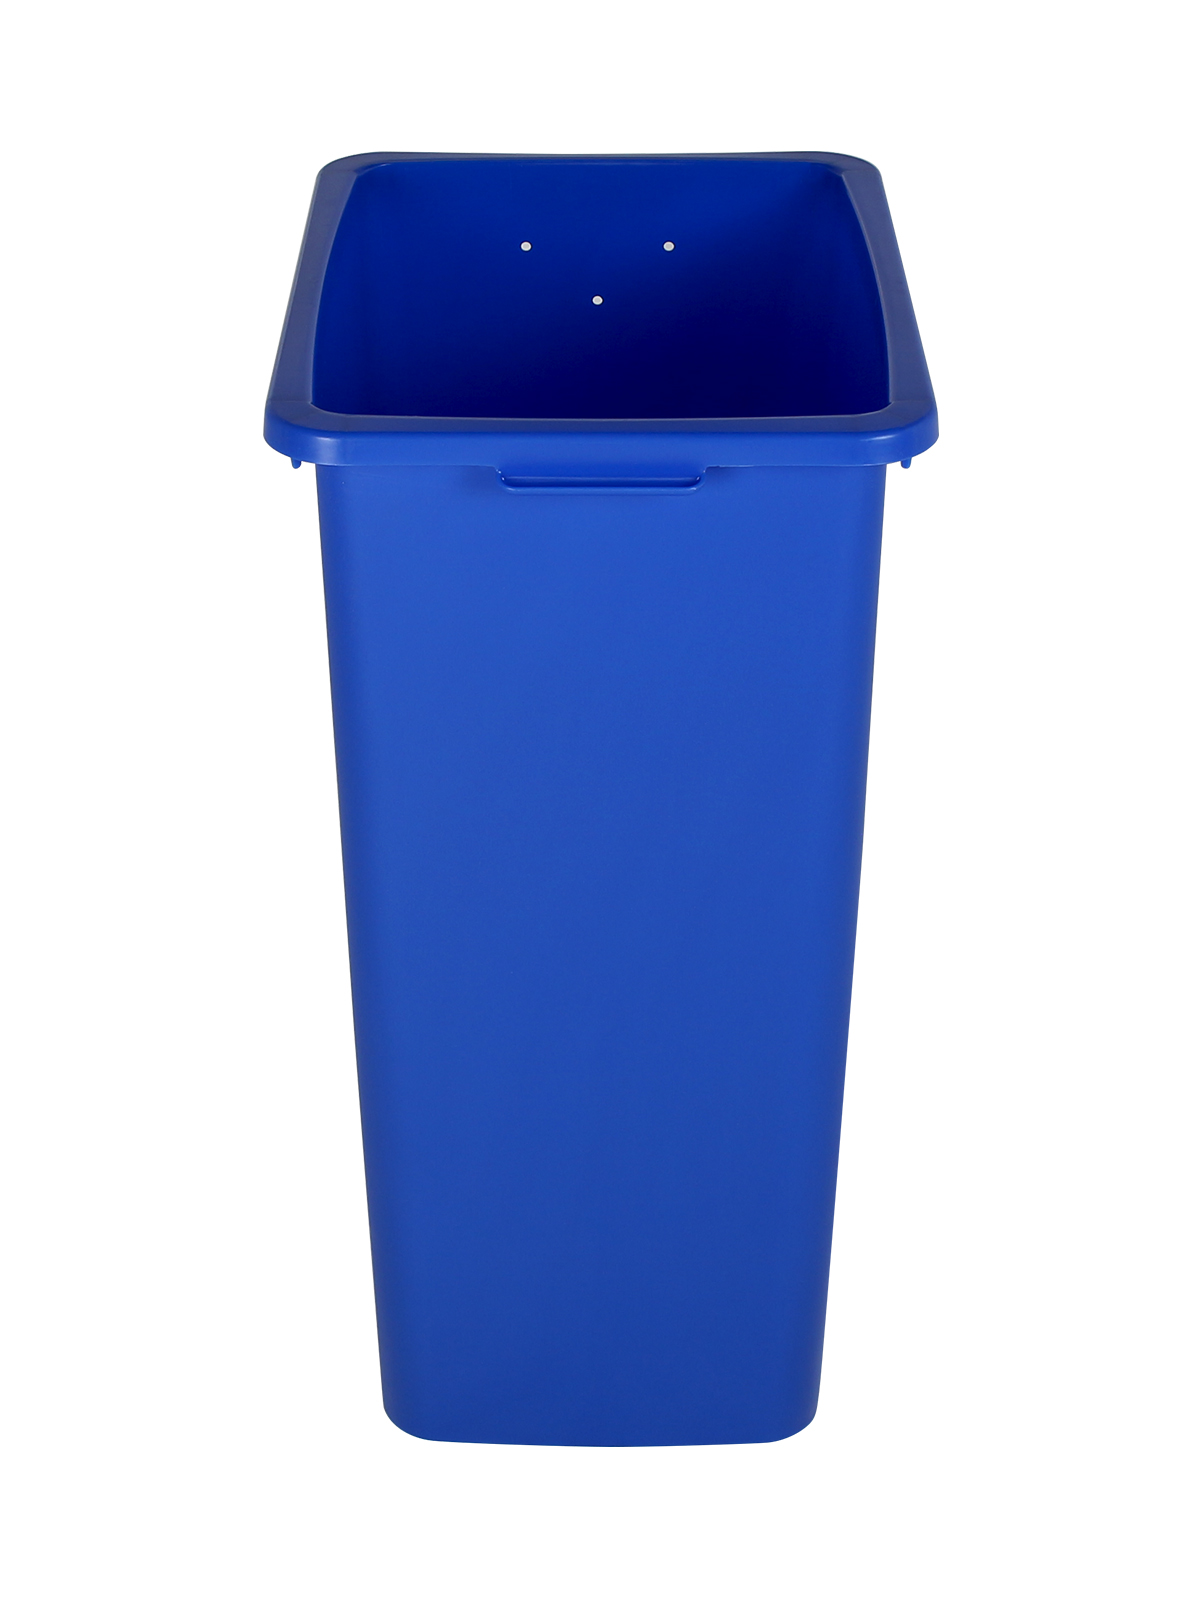 WASTE WATCHER XL - Single - Body - 30 - Mobius Loop - Royal Blue